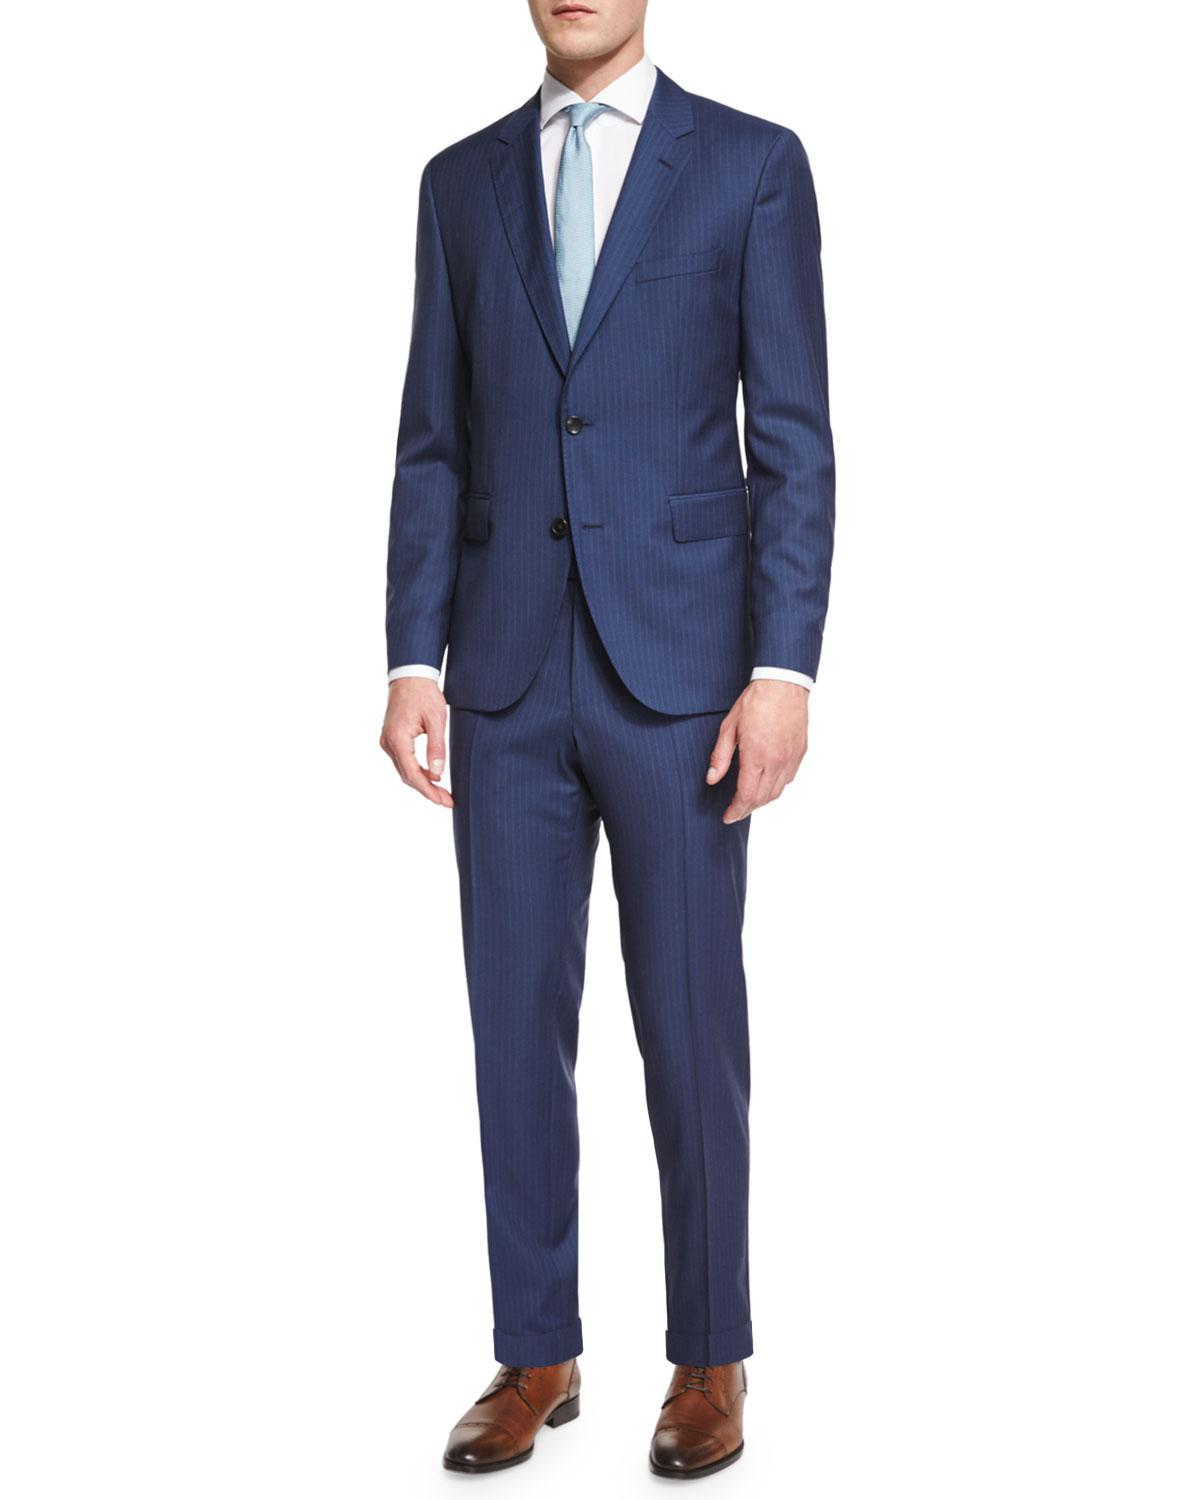 a9878a7cc Lyst - BOSS Johnstons Lennon Striped Slim-fit Basic Suit in Blue for Men